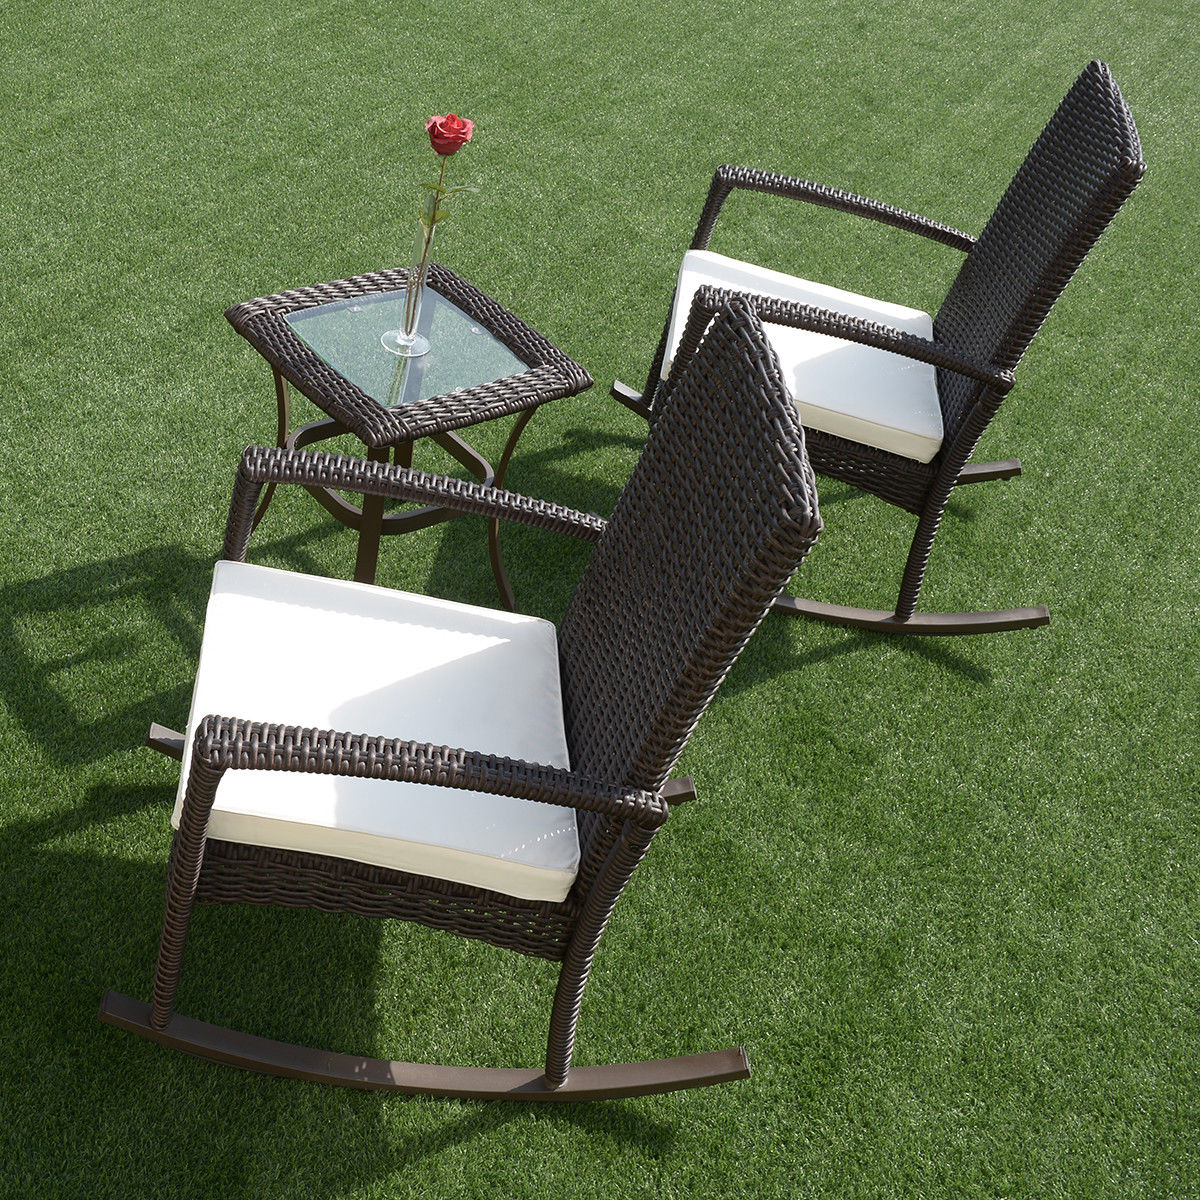 Gymax 3PC Patio Rattan Wicker Furniture Set Cushioned Outdoor Garden - image 3 of 8